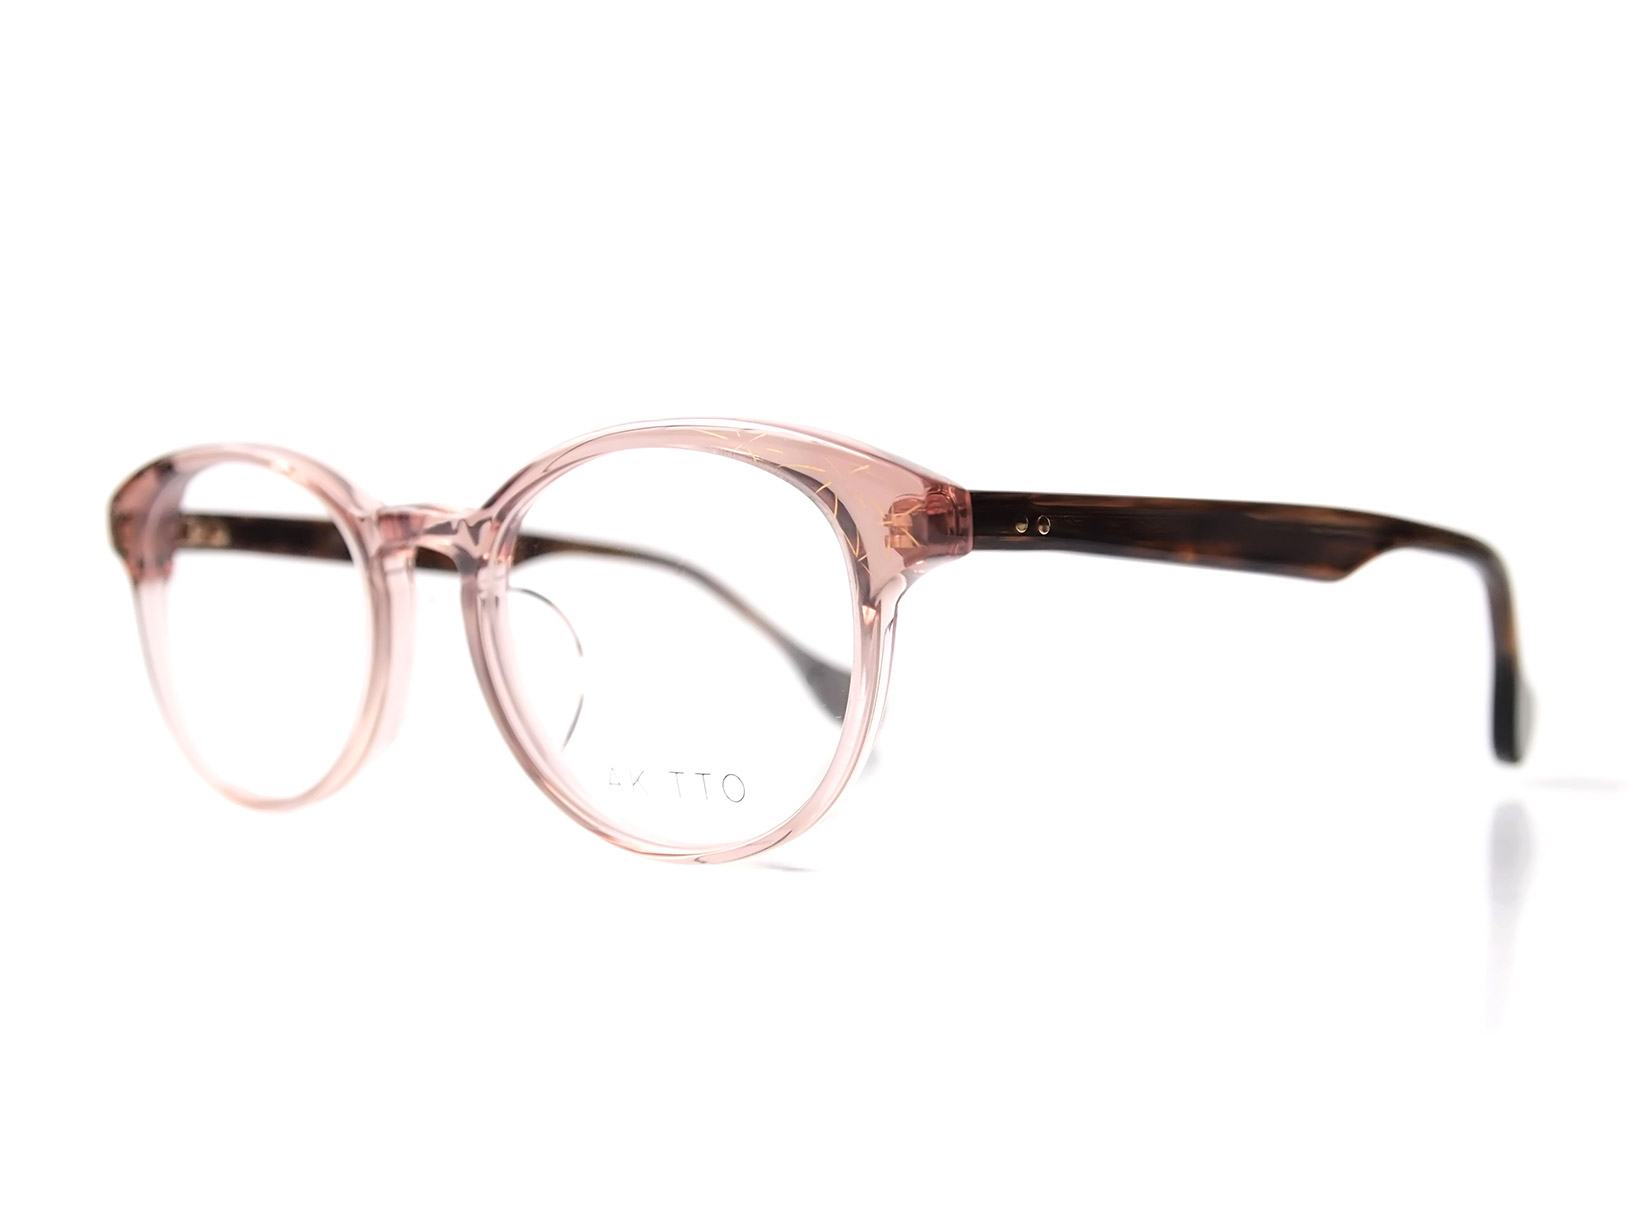 AKITTO 2017-3rd kin color 189 size:48□19 material: acetate+gold price:39800-(+tax)